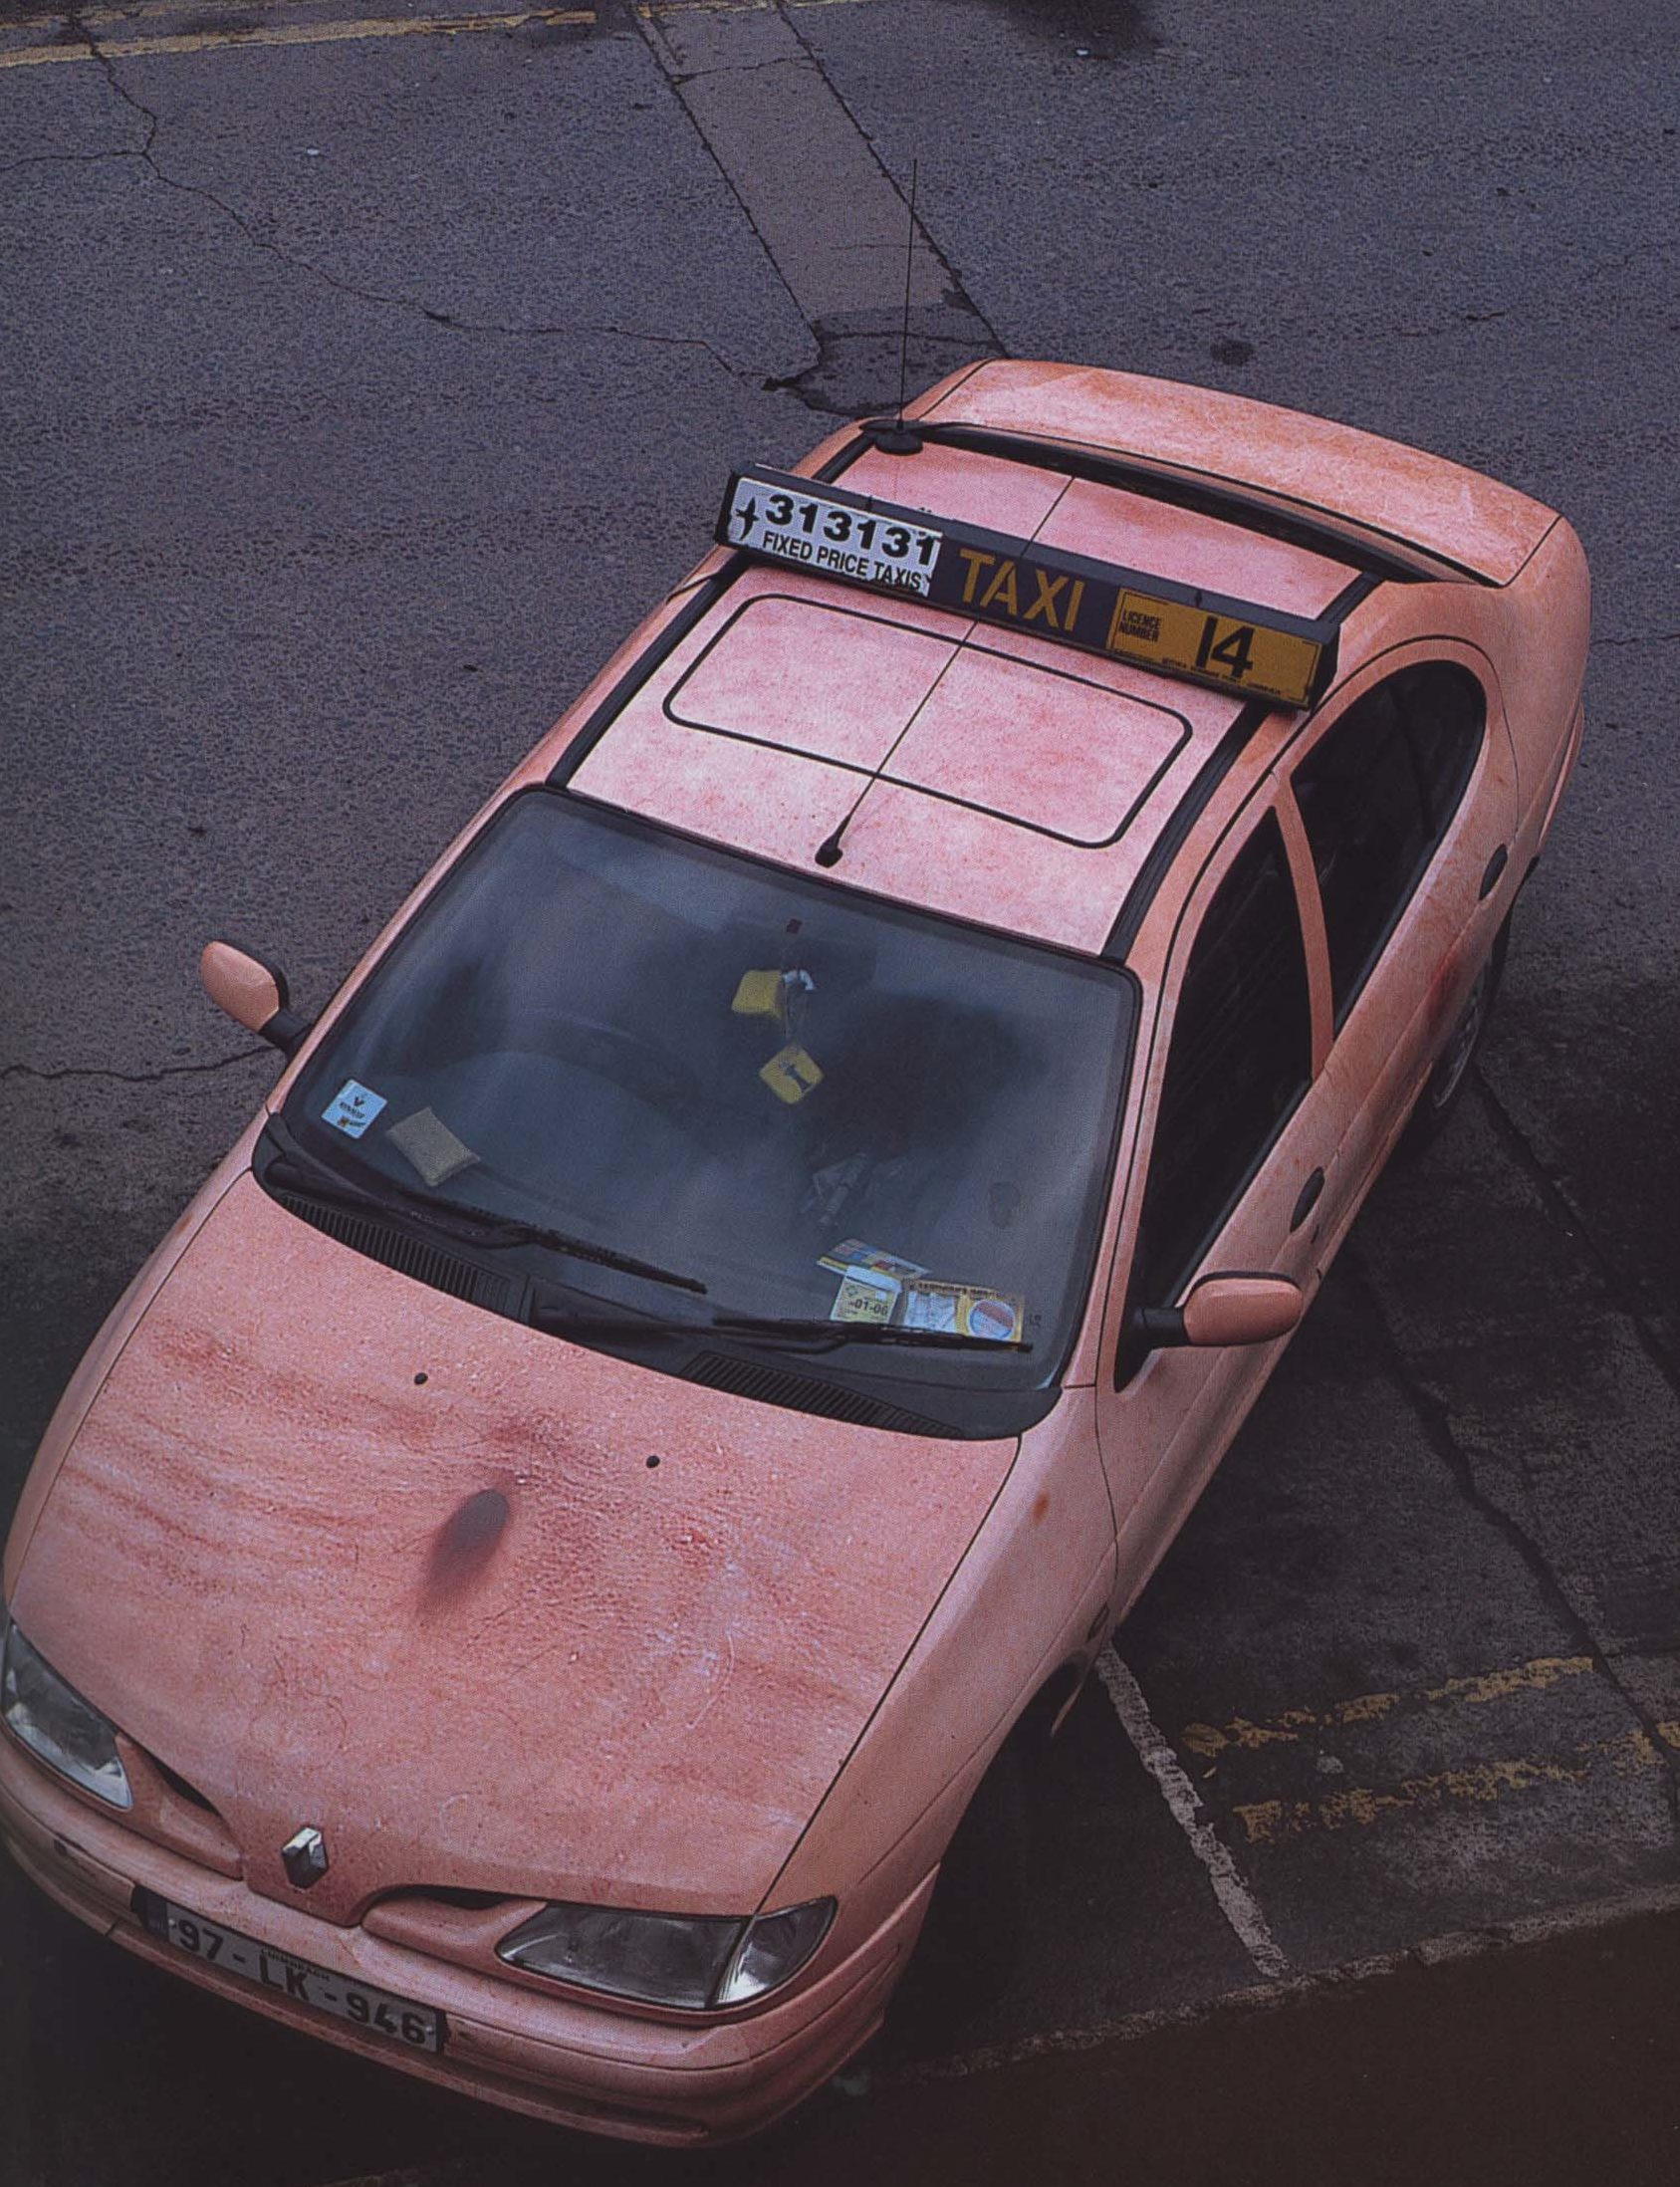 Patrick Killoran, Autobody 09 (Willie O'Brien), 2000 - 2005, roving city-centre taxi